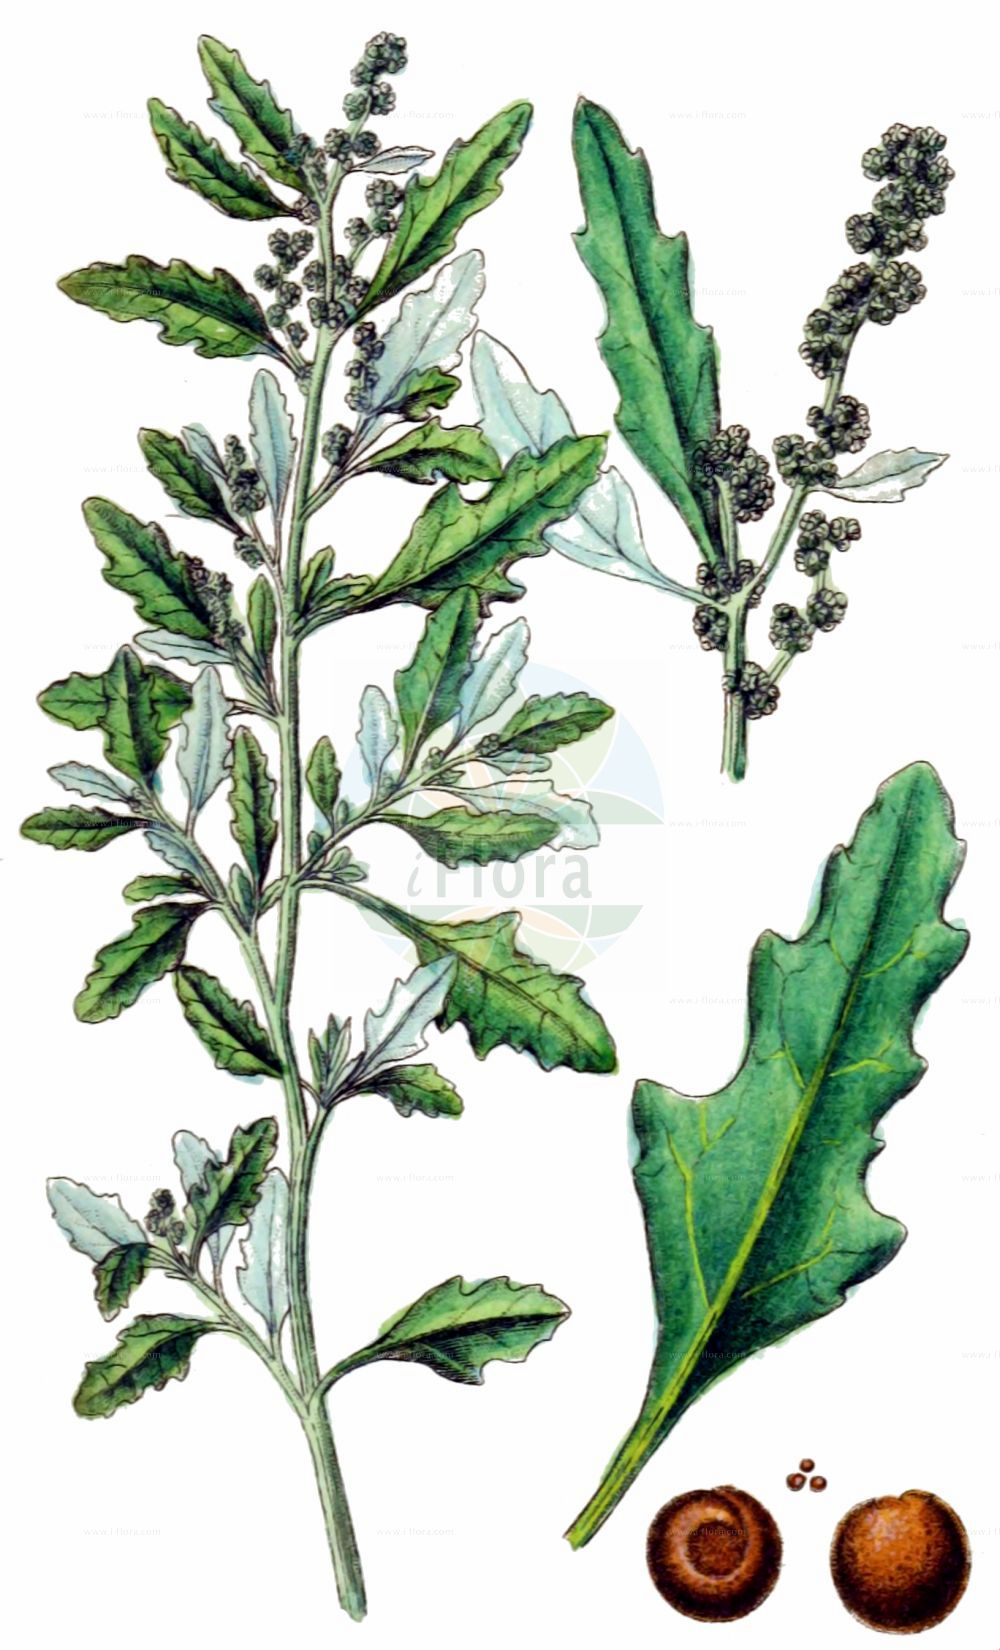 Historische Abbildung von Oxybasis glauca (Graugruener Gaensefuss - Oak-leaved Goosefoot). Das Bild zeigt Blatt, Bluete, Frucht und Same. ---- Historical Drawing of Oxybasis glauca (Graugruener Gaensefuss - Oak-leaved Goosefoot).The image is showing leaf, flower, fruit and seed.(Oxybasis glauca,Graugruener Gaensefuss,Oak-leaved Goosefoot,Chenopodium glaucum,Chenopodium wolffii,Oxybasis glauca,Graugruener Gaensefuss,Grauer Gaensefuss,Oak-leaved Goosefoot,Glaucous Goosefoot,Oak-leaf Goosefoot,Oxybasis,Amaranthaceae,Fuchsschwanzgewaechse,Pigweed family,Blatt,Bluete,Frucht,Same,leaf,flower,fruit,seed,Sturm (1796f))